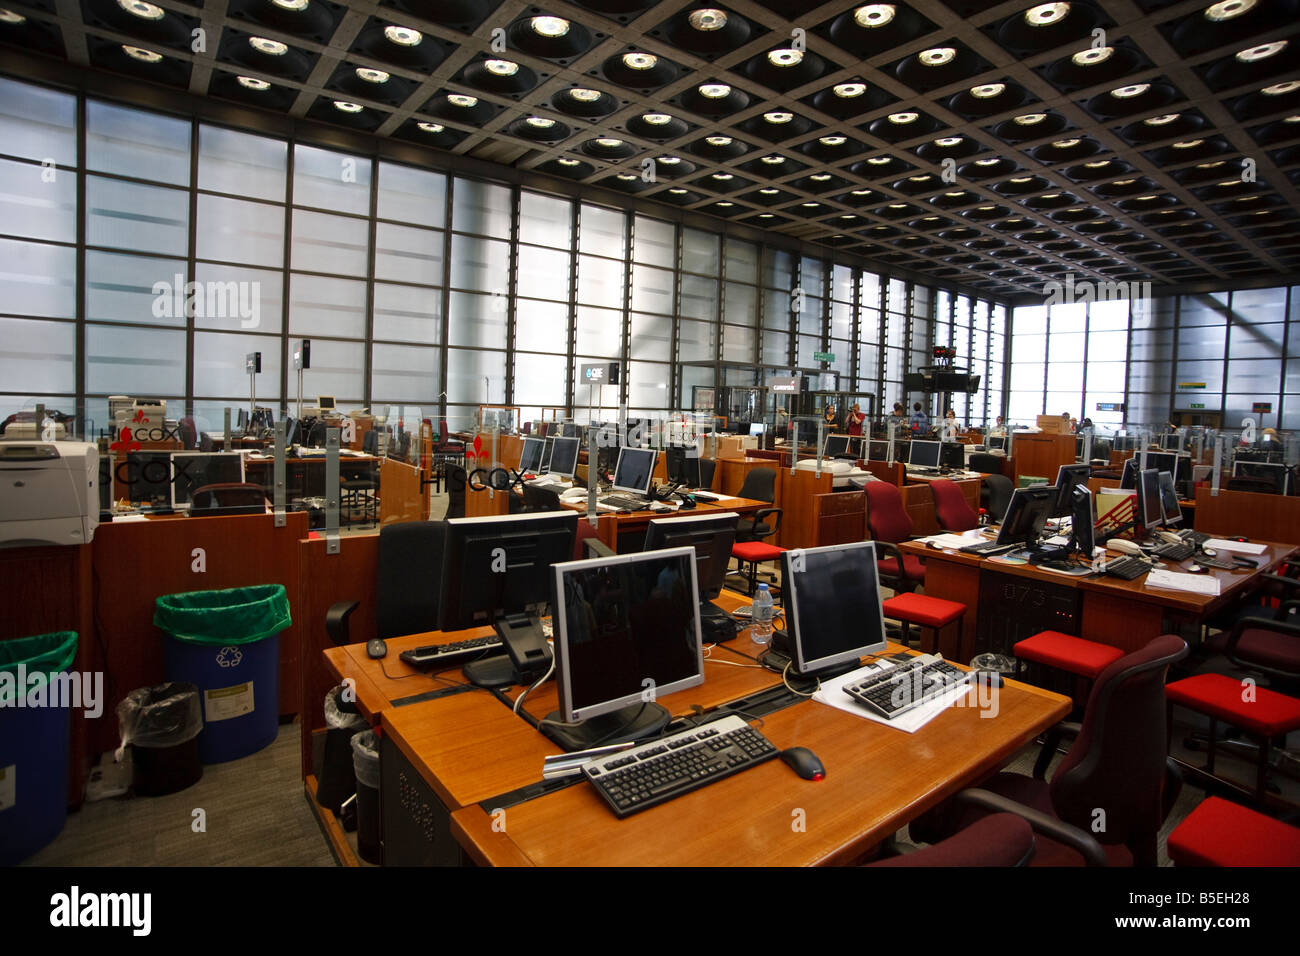 The Underwriting Room At Lloyds Of London Stock Photo